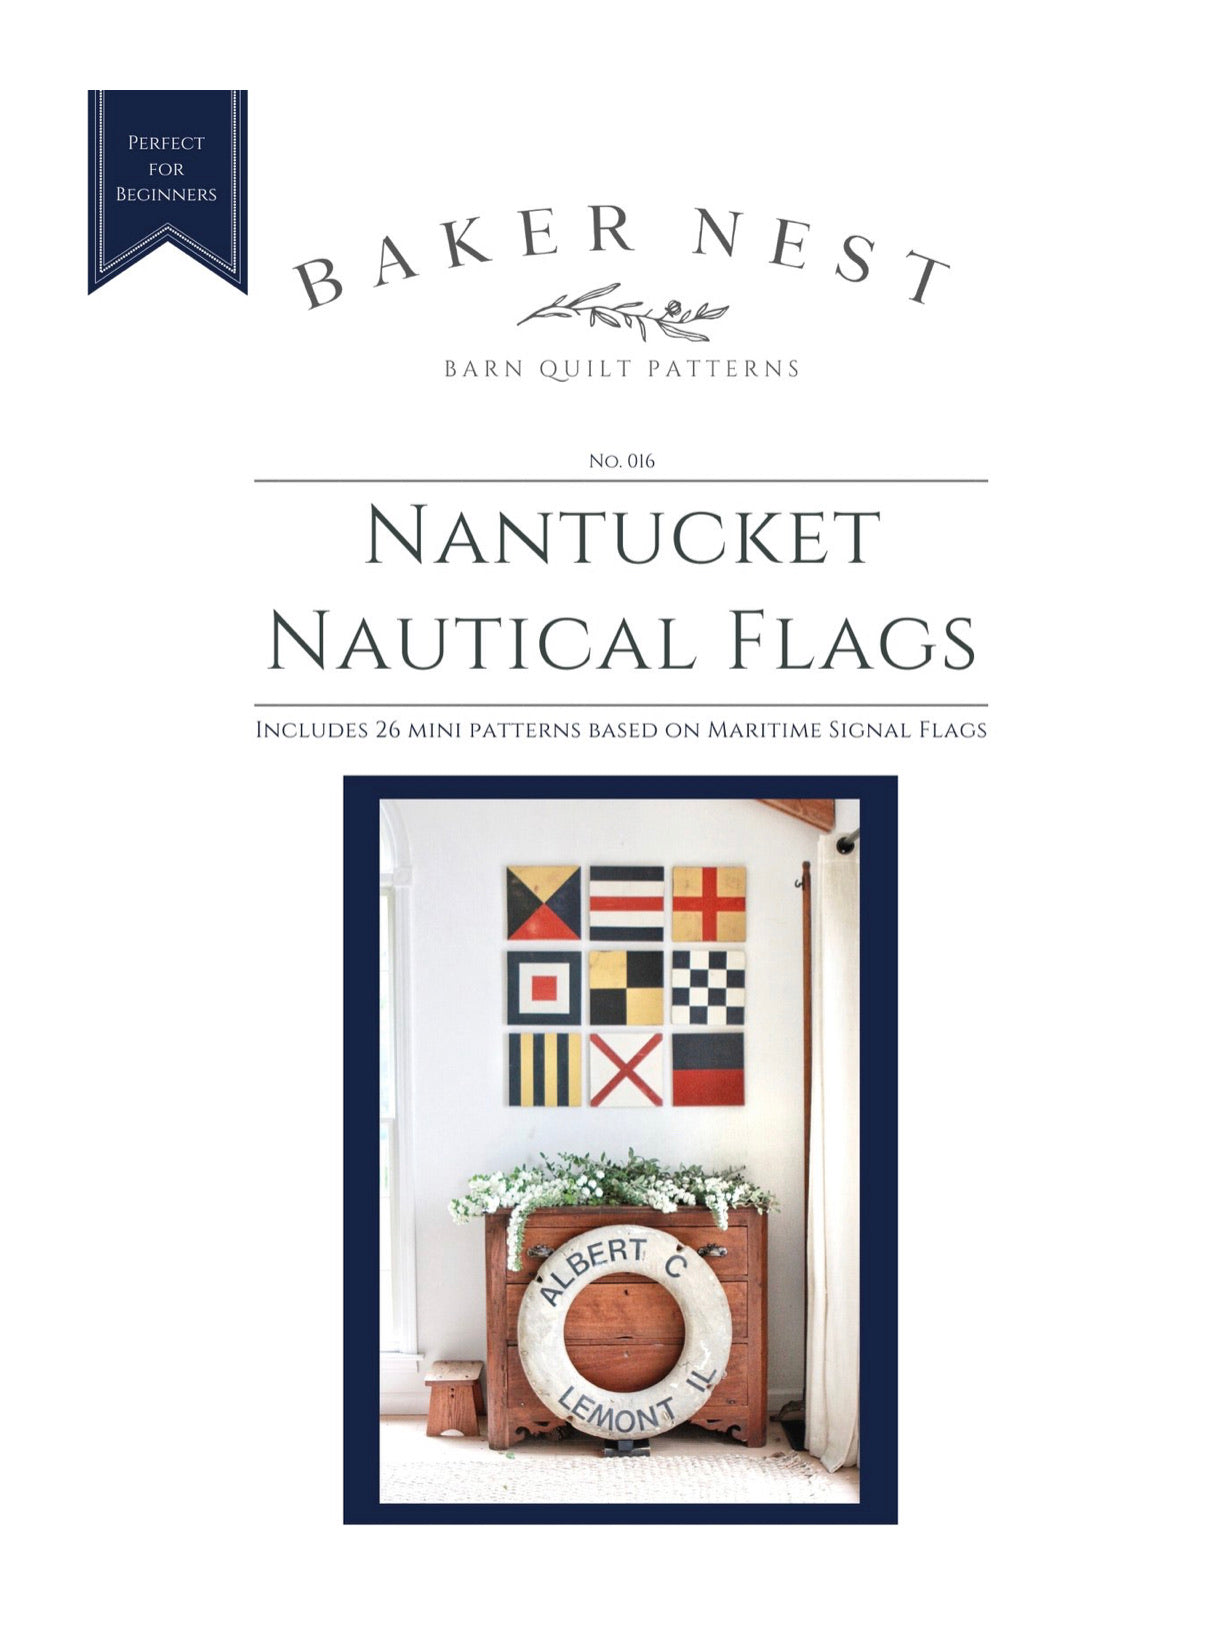 nantucket nautical flags